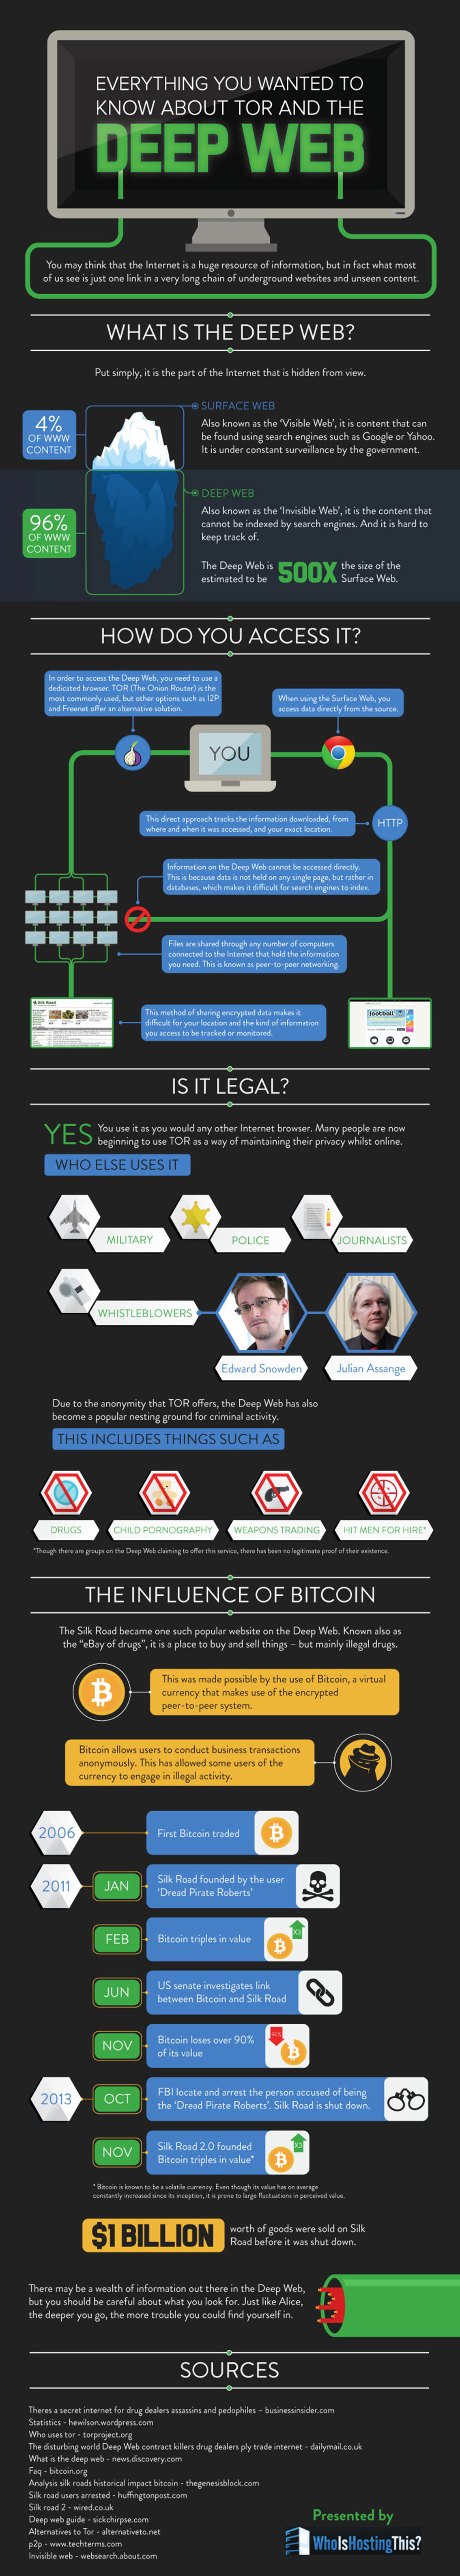 How to Access The Deep Web Safely Infographic